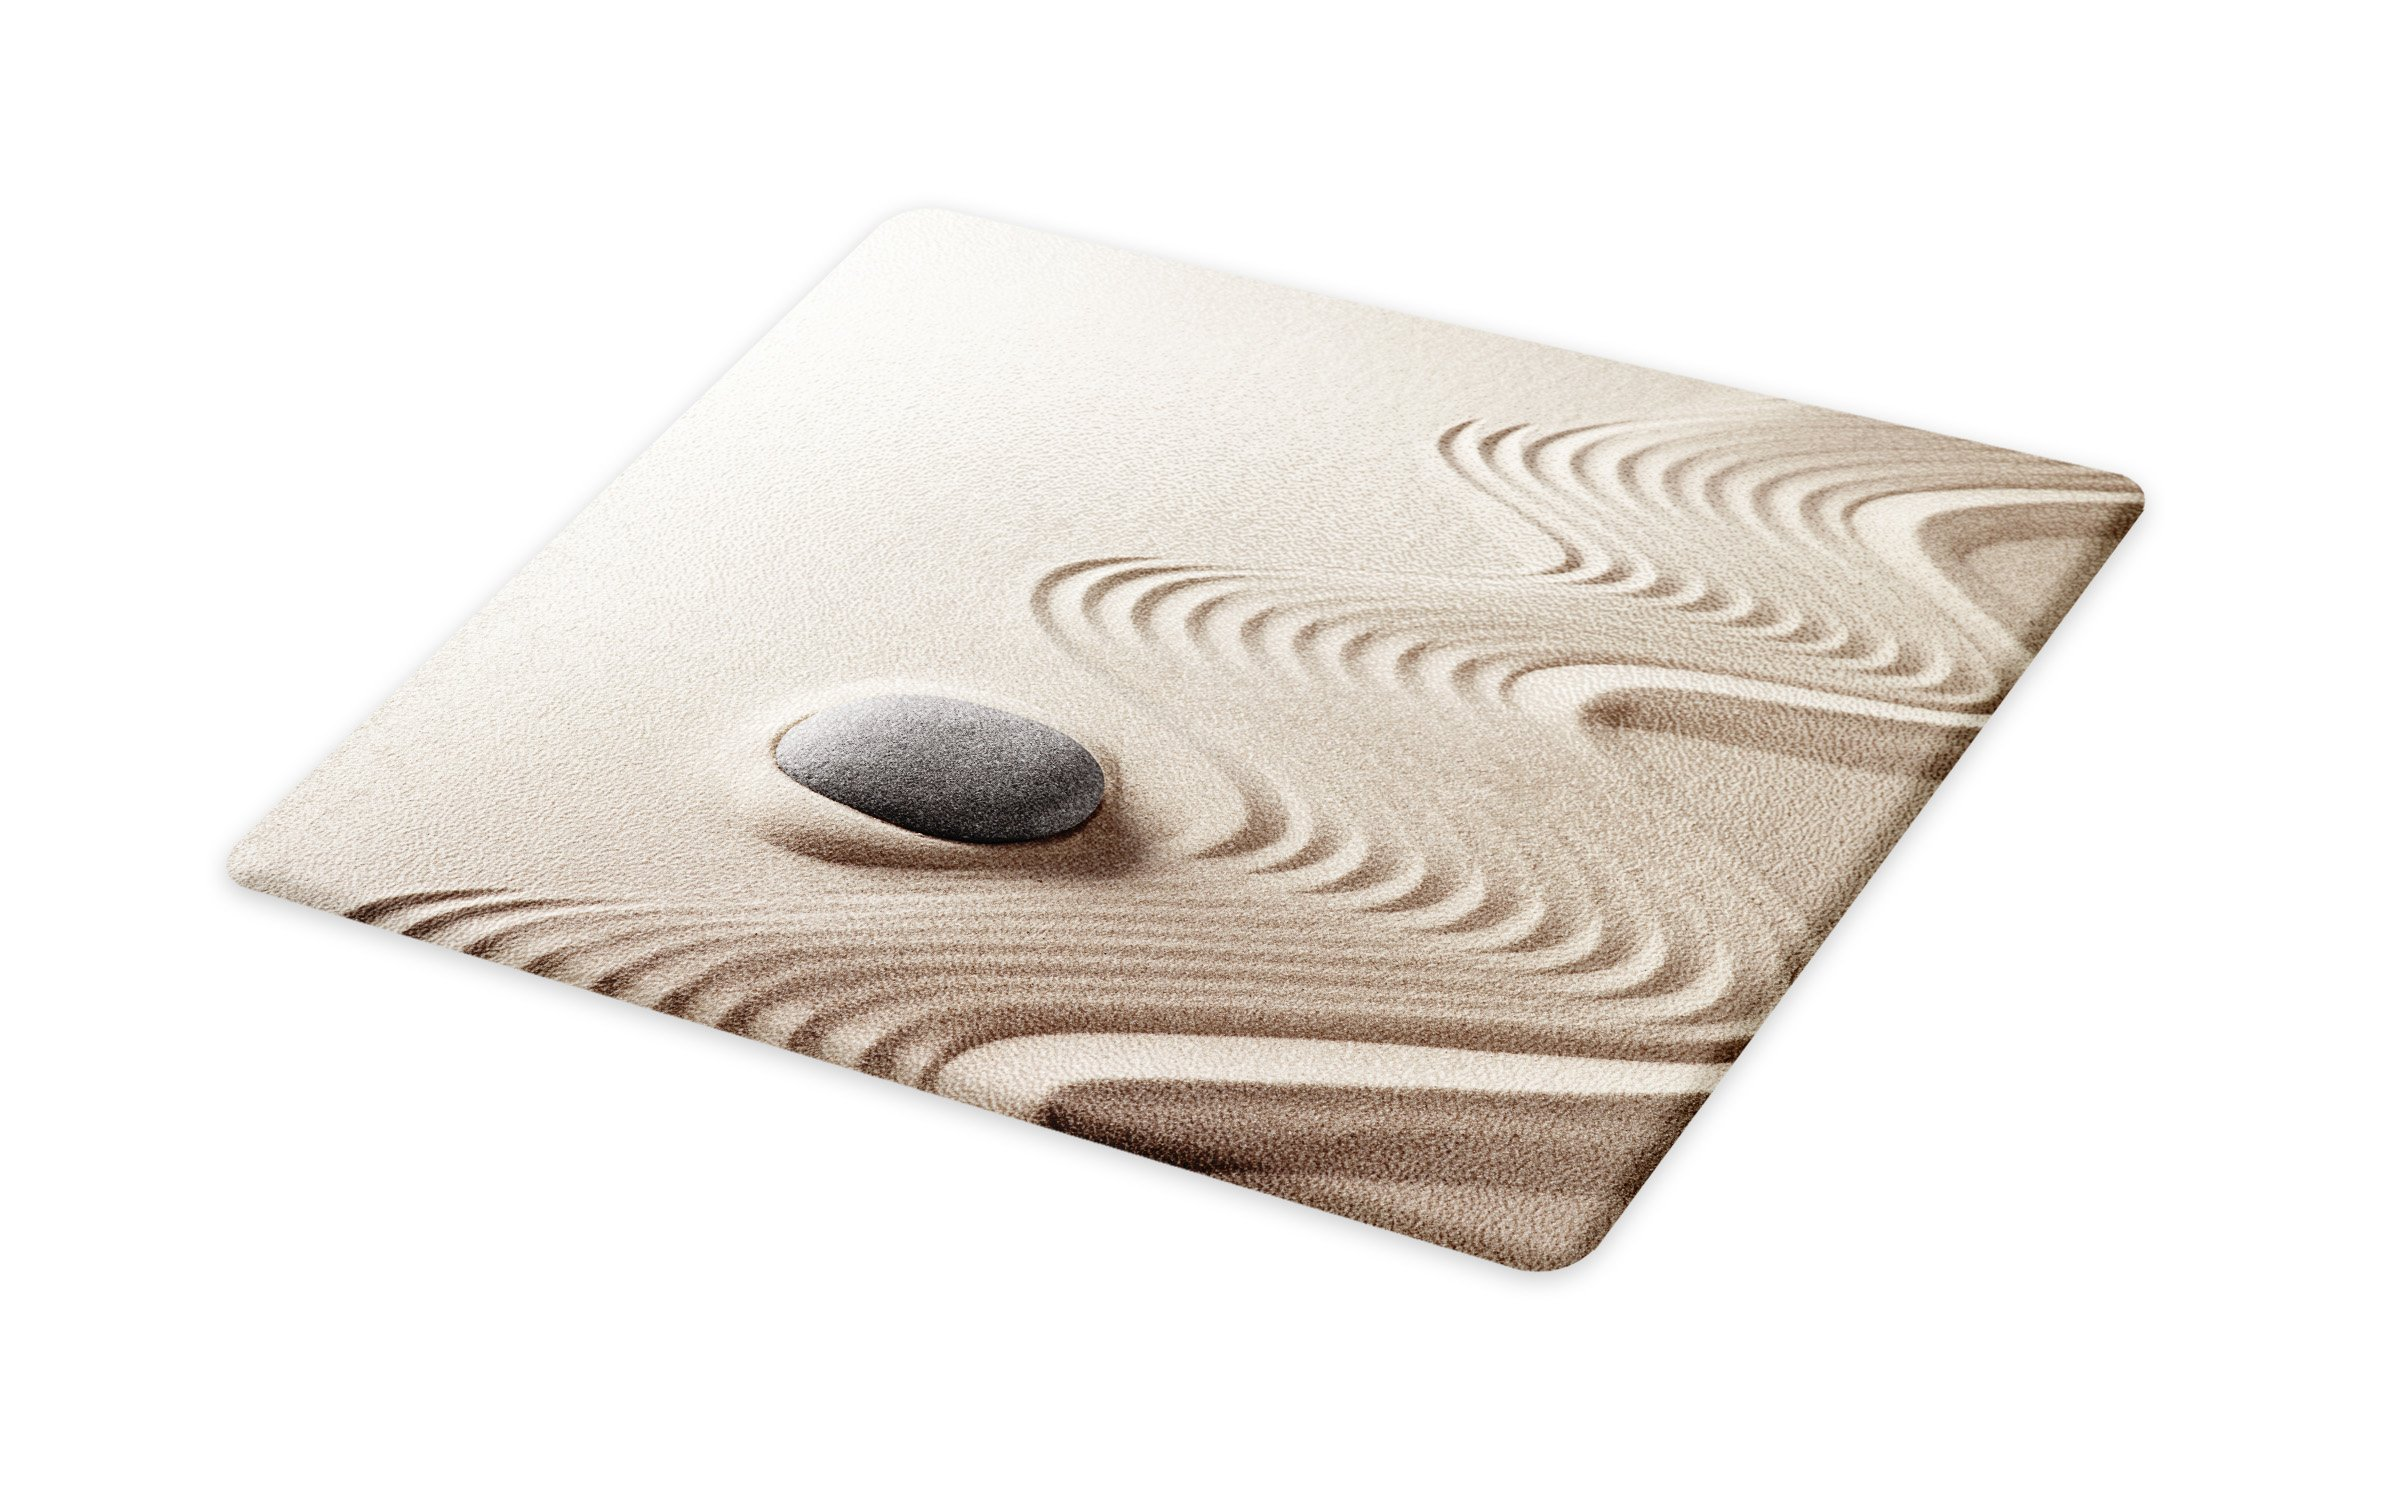 Lunarable Spa Cutting Board, The Caribbean White Sand in Shaped Like Waves Near a Grey Zen Stones Work of Art, Decorative Tempered Glass Cutting and Serving Board, Small Size, Green and White